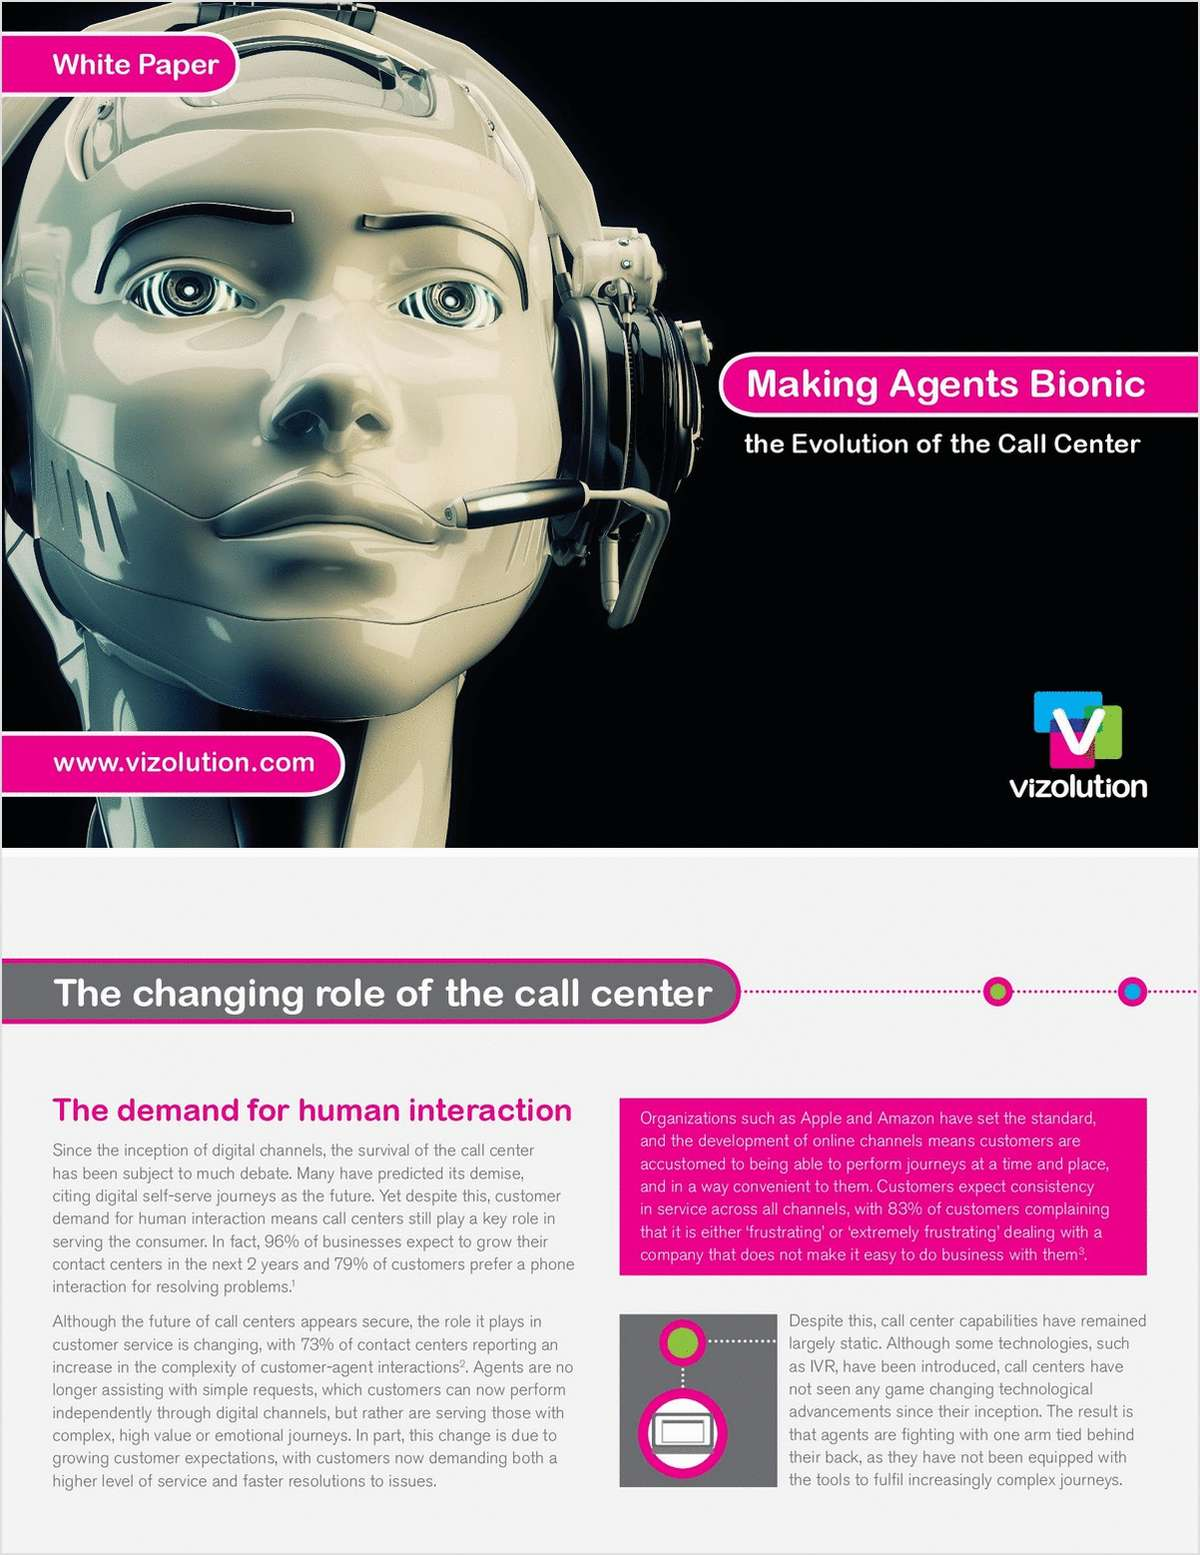 Making Agents Bionic: The Evolution of the Call Center- North America